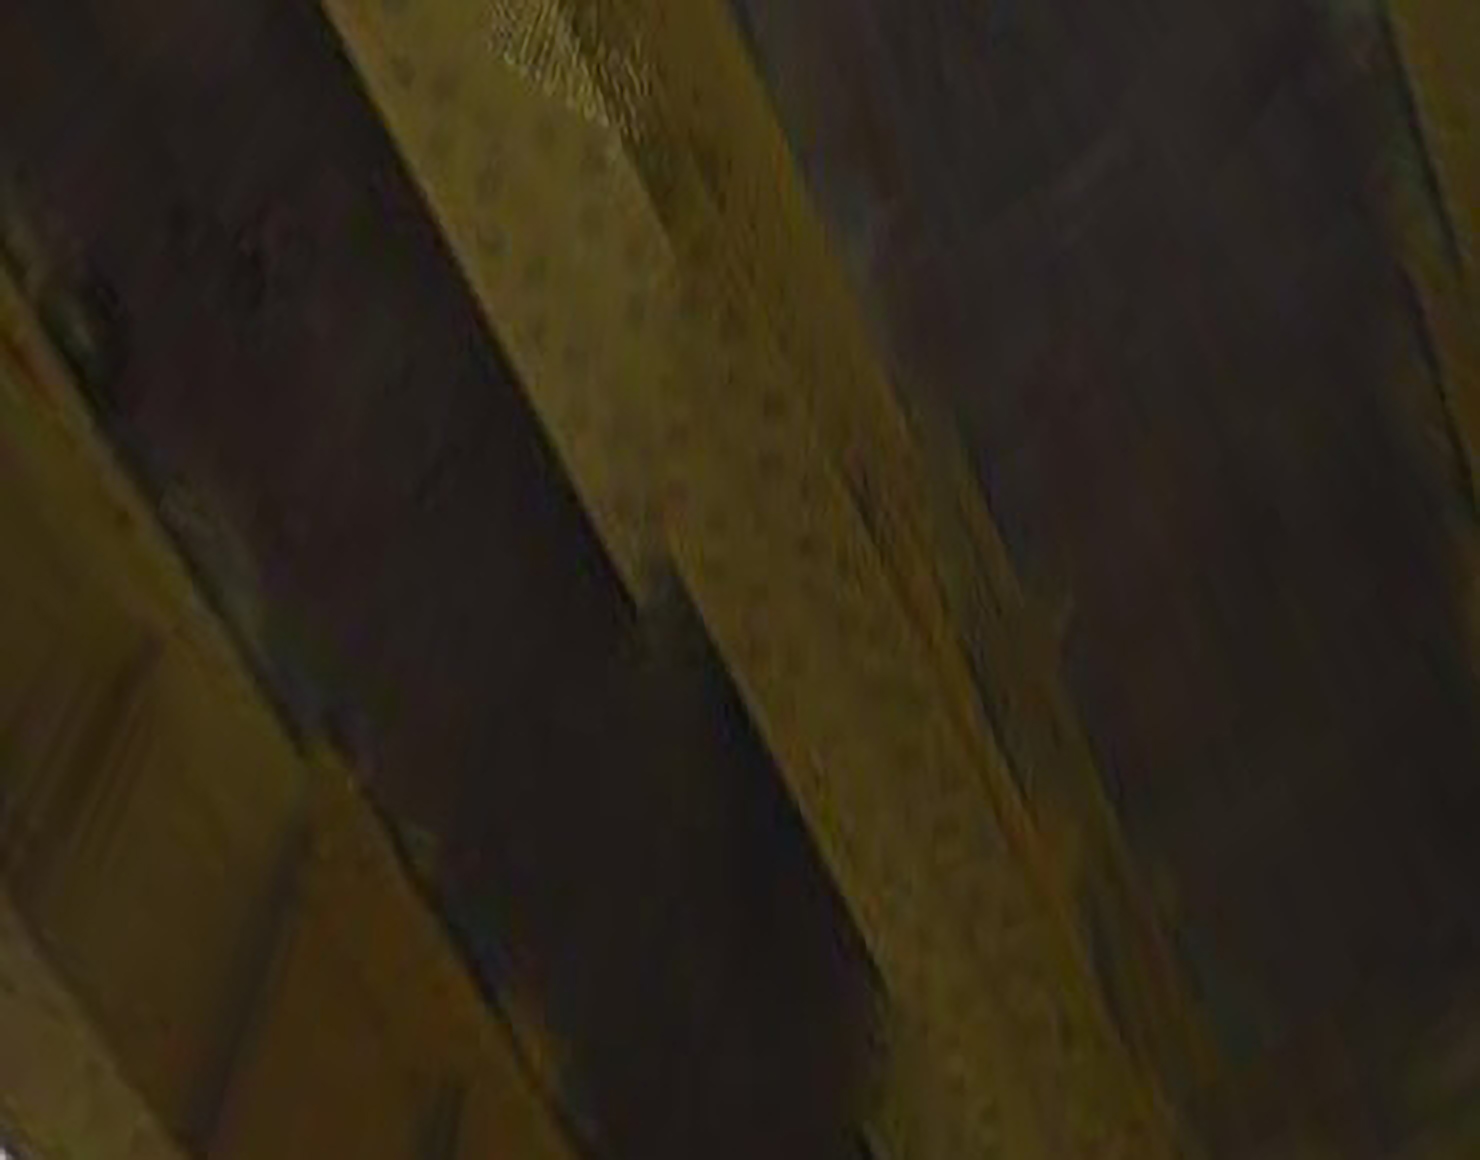 An abstract photograph of the underside of a yellow bridge, built out of riveted steel.